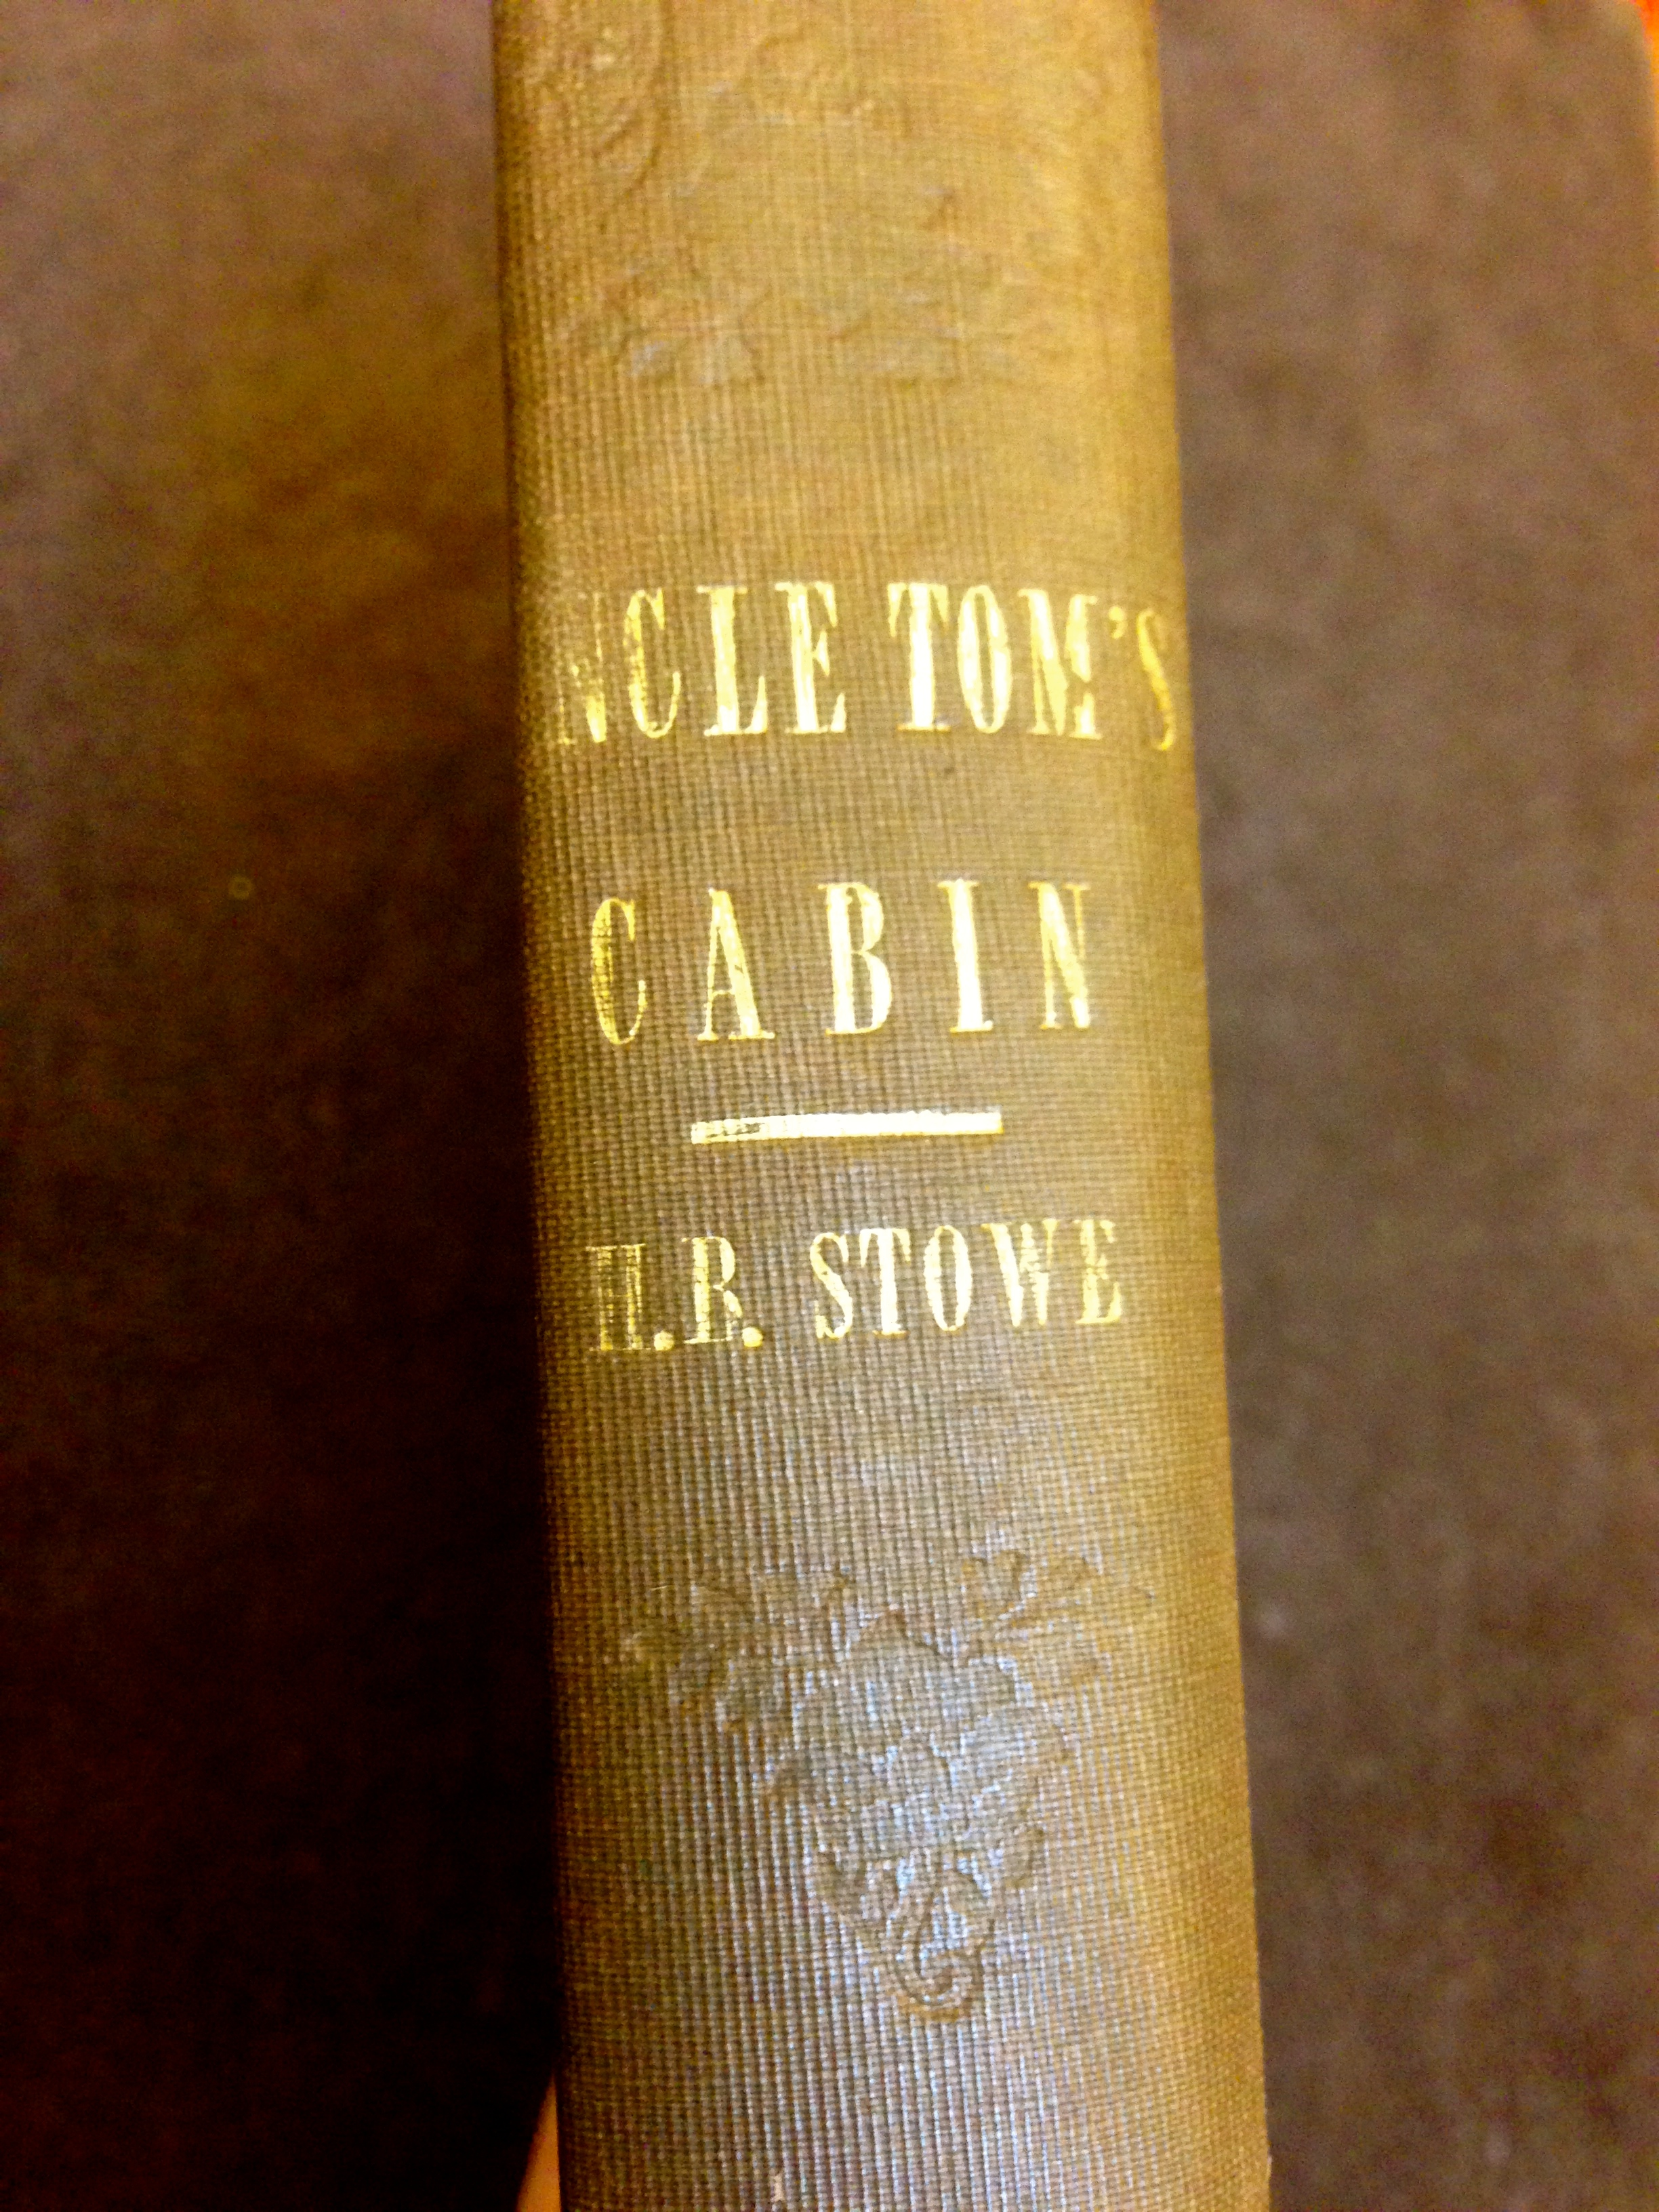 Spine of the first edition, first issue of Uncle Tom's Cabin.